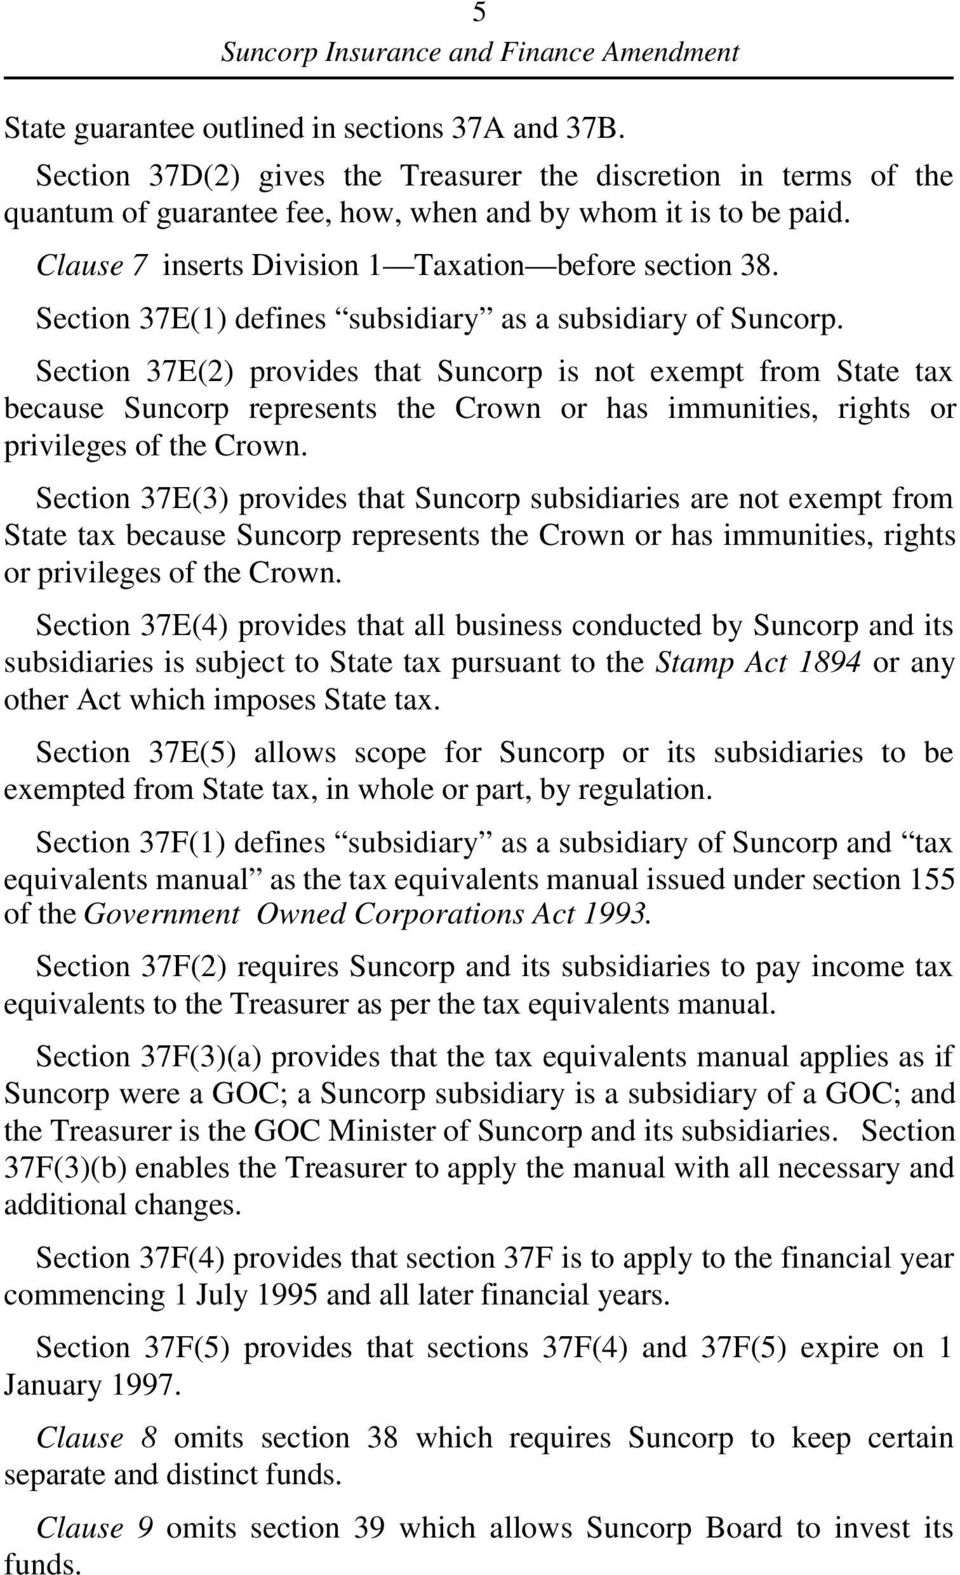 Section 37E(2) provides that Suncorp is not exempt from State tax because Suncorp represents the Crown or has immunities, rights or privileges of the Crown.